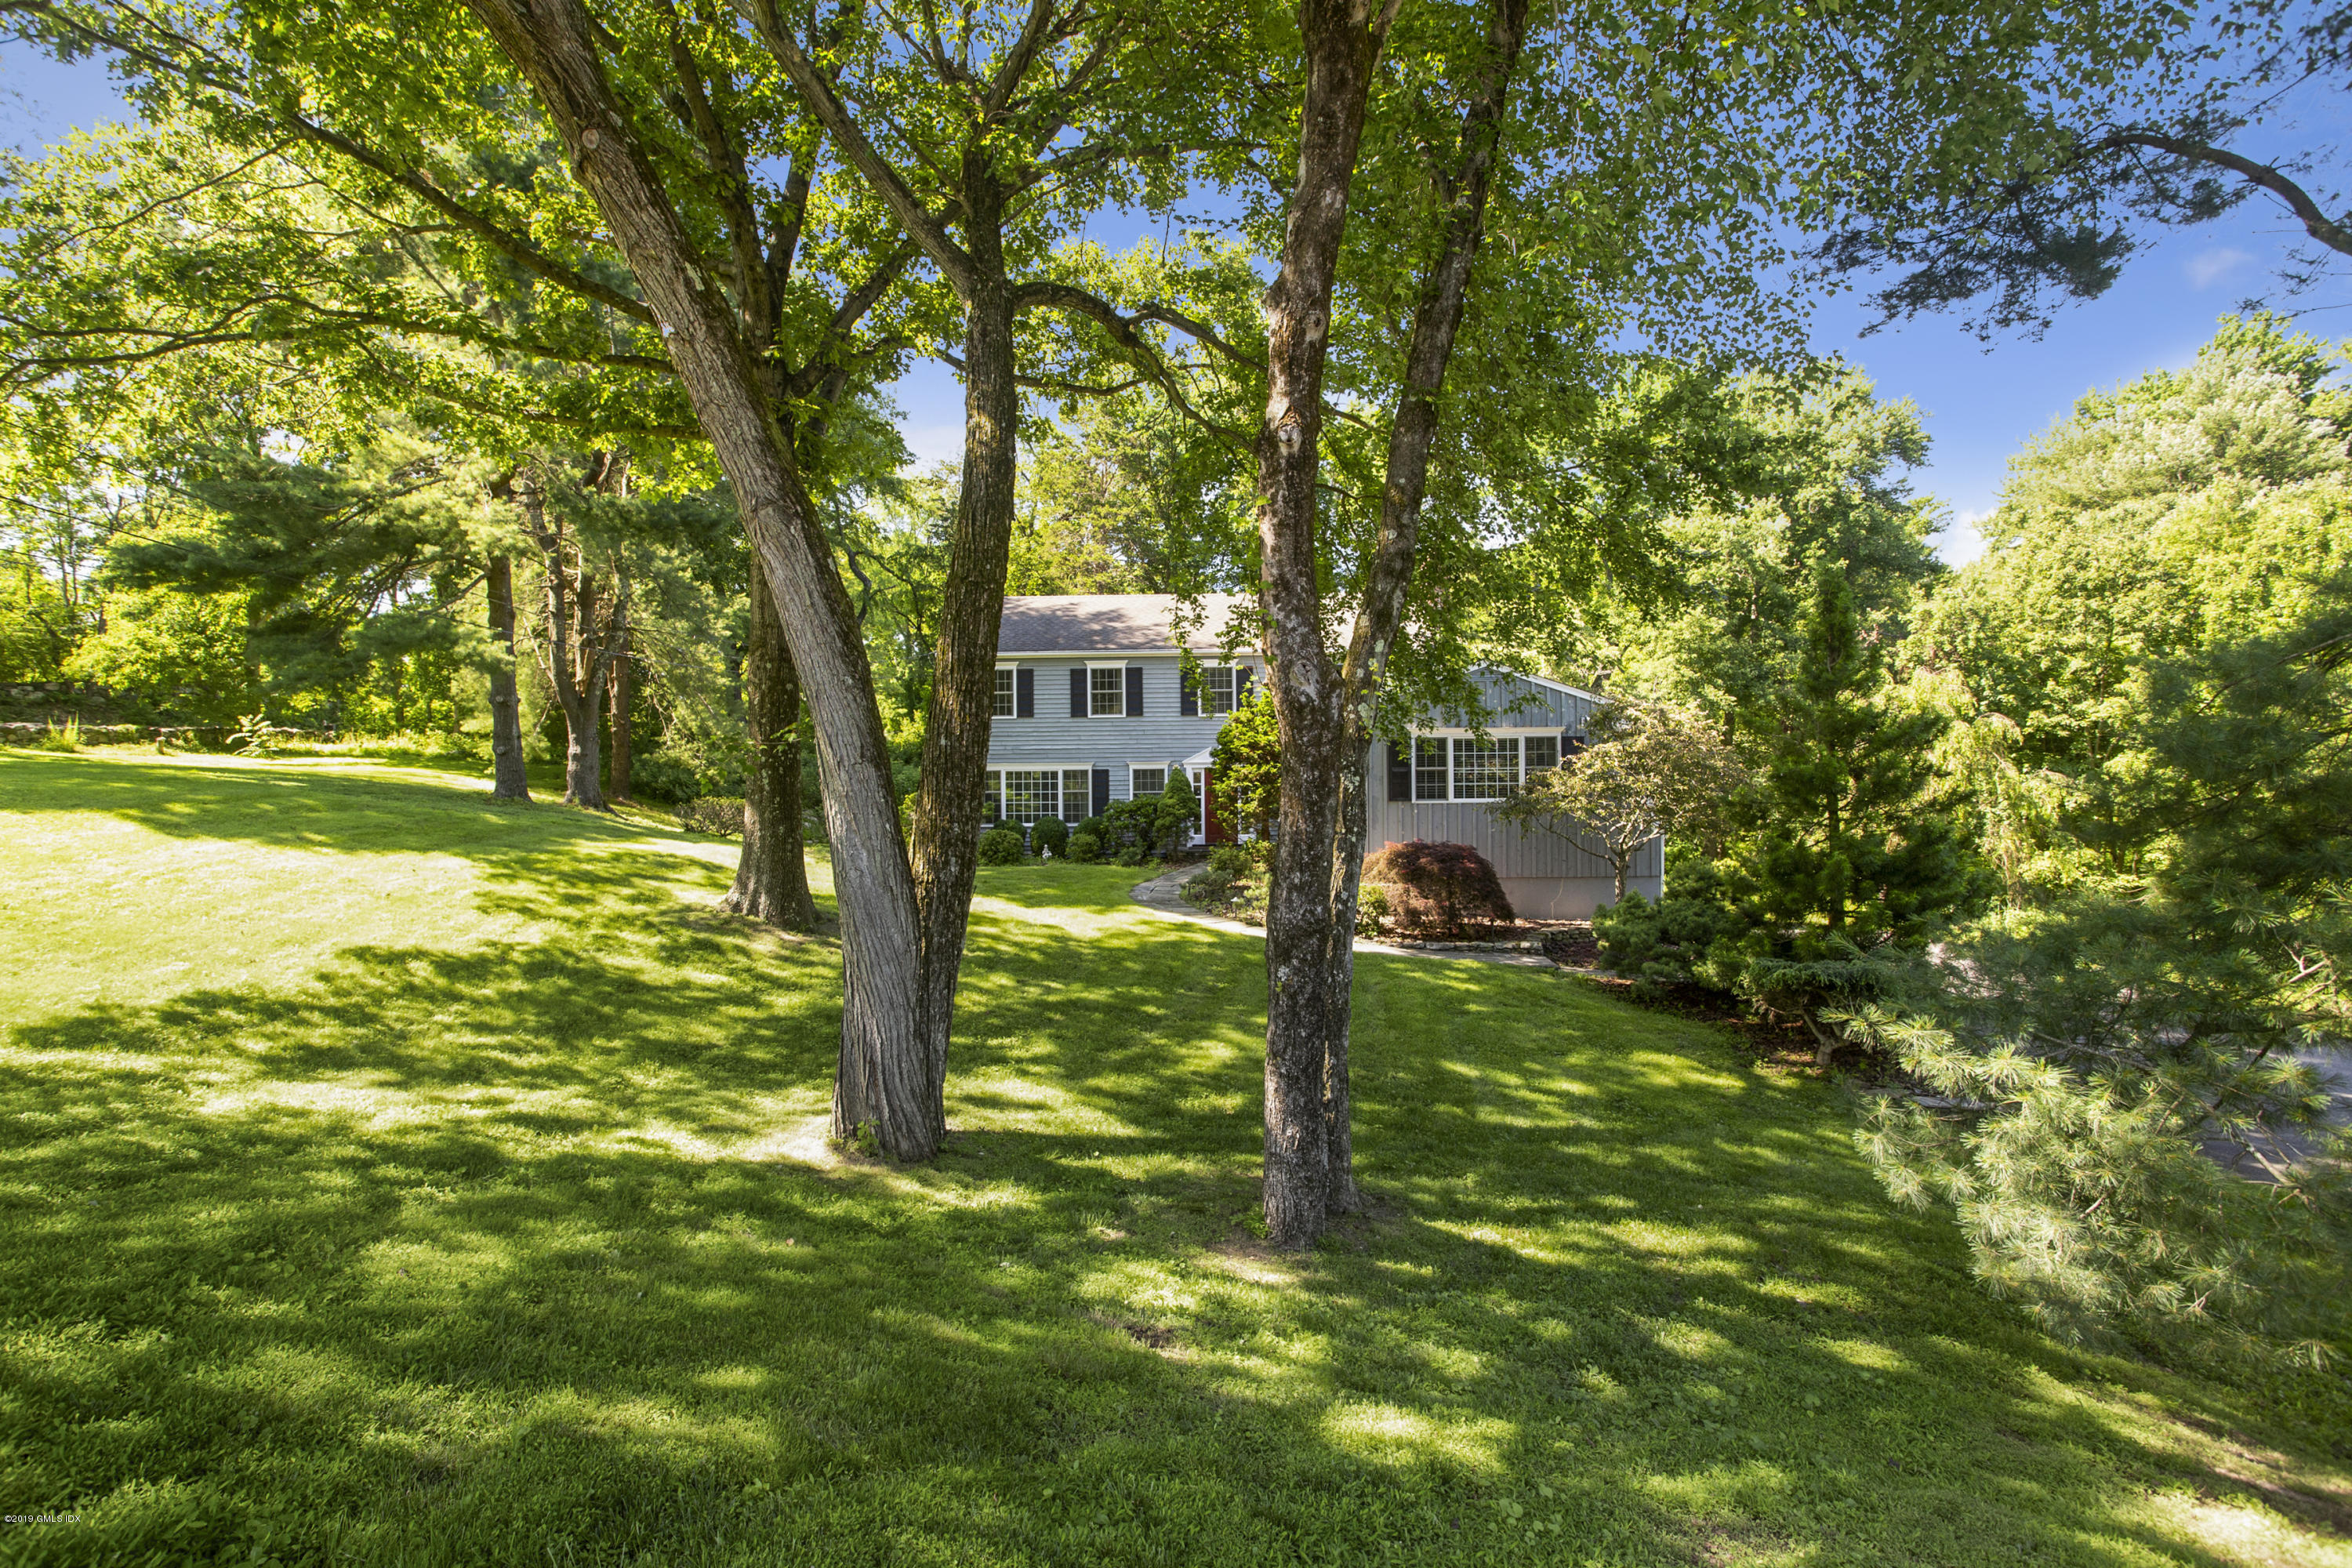 10 Ambler Lane, Wilton, CT 06897